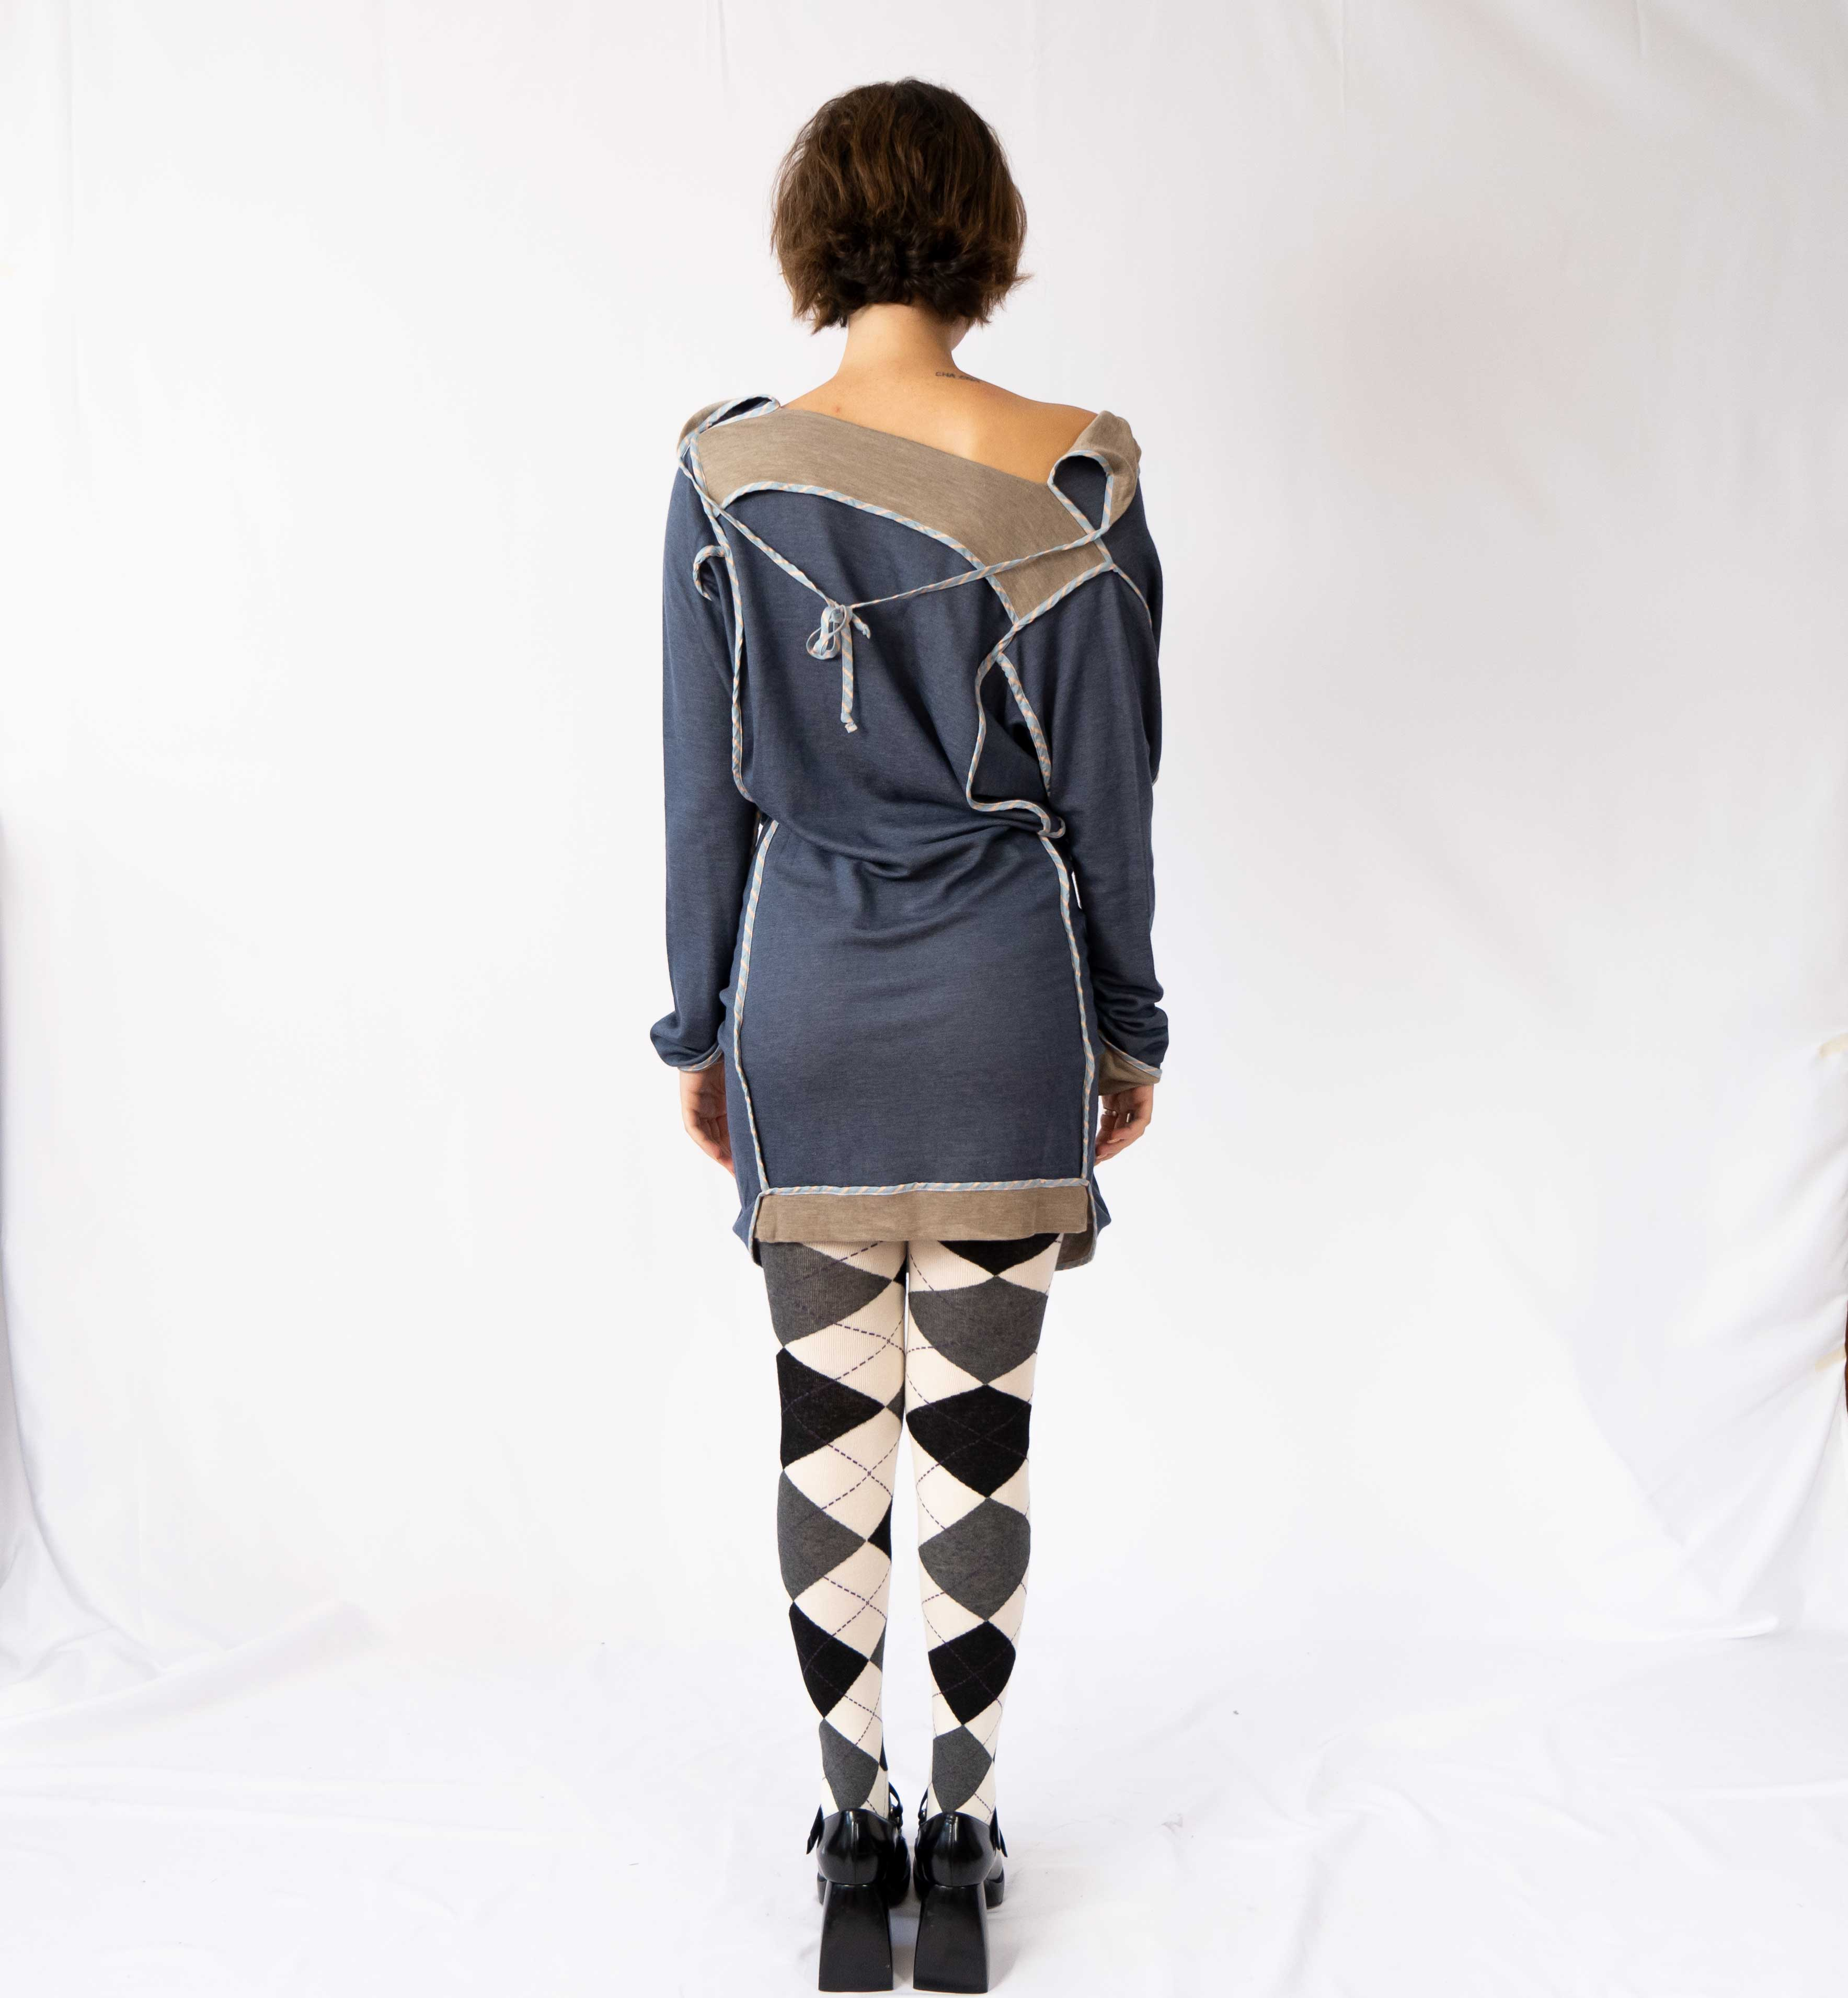 The most incredible weird Vivienne Westwood jersey dress. You have endless freedom with this number, play around with the ties, wear it reverse... the ball is in your court.